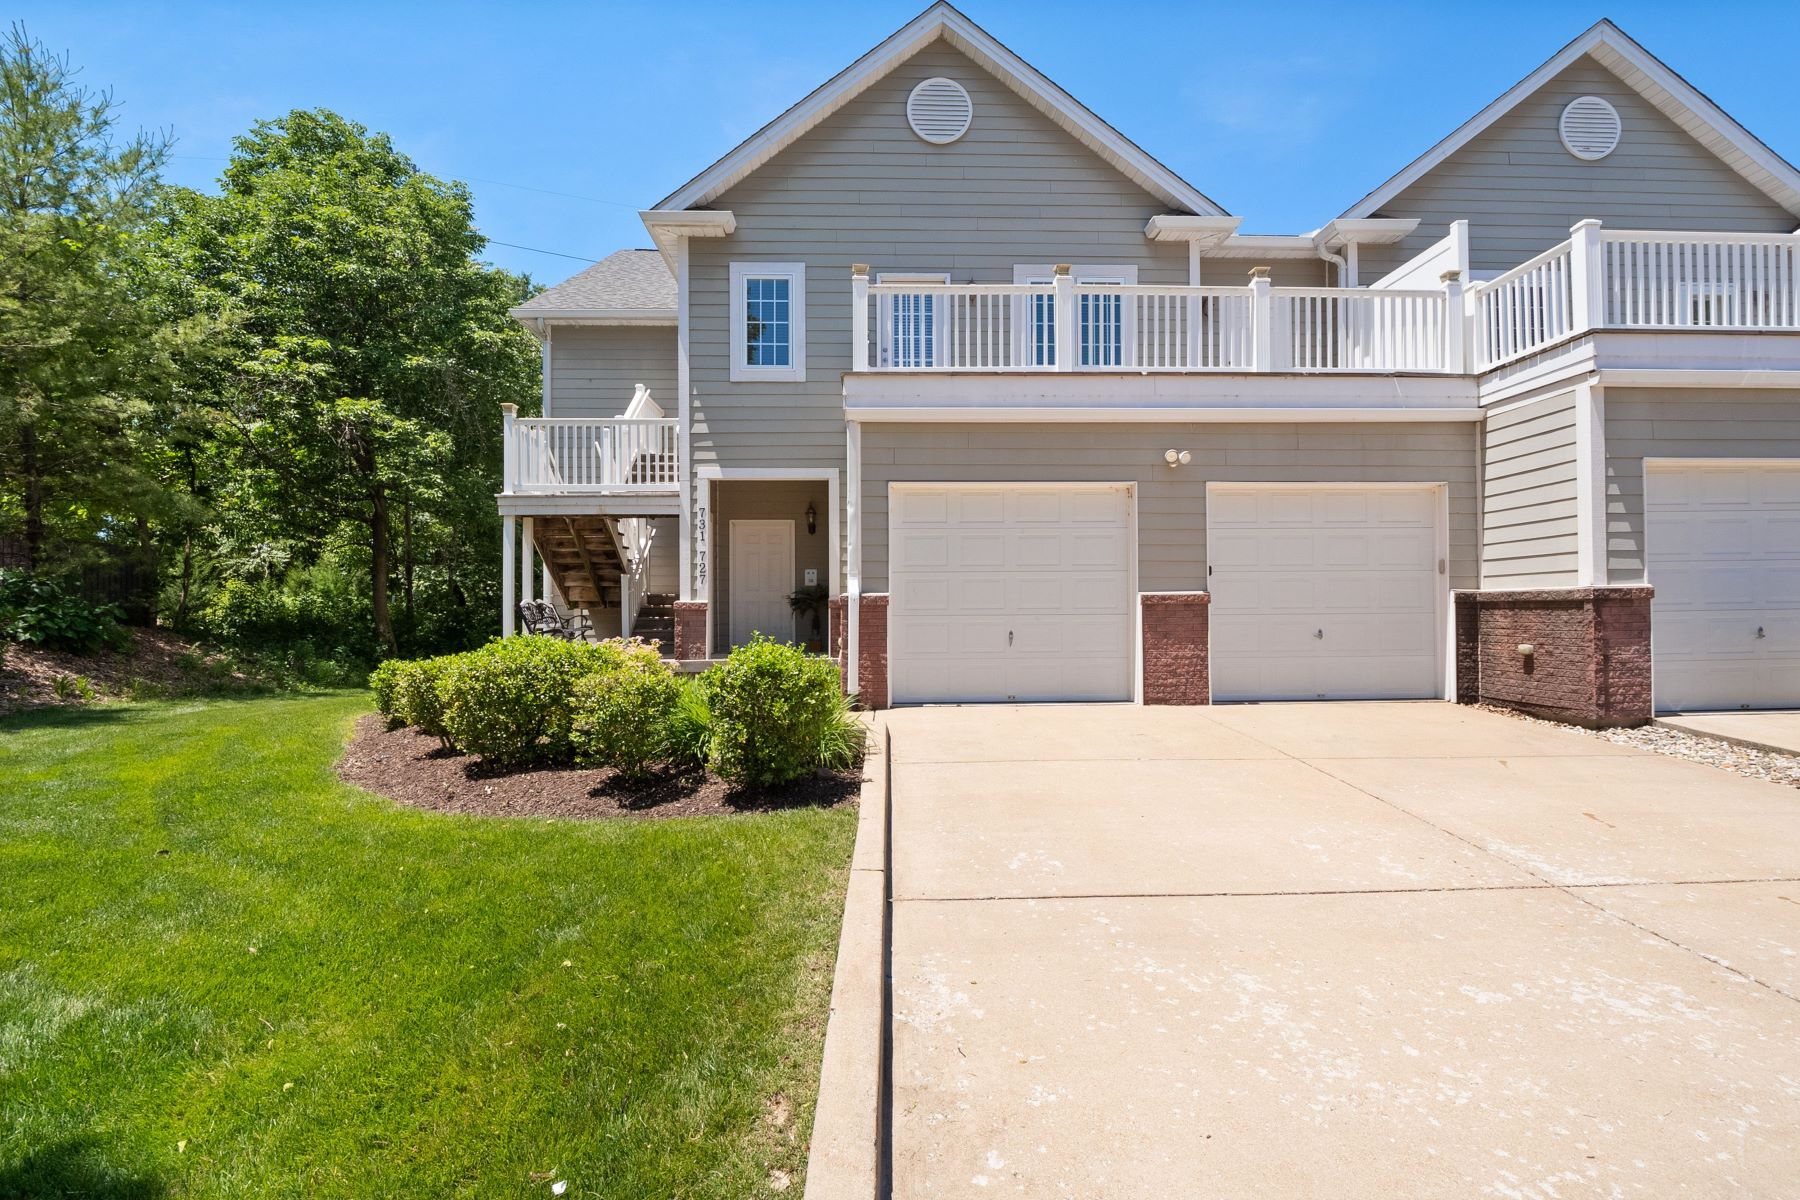 Condominiums for Sale at Easy Living in Kirkwood Condo 731 Windberry Court Oakland, Missouri 63122 United States